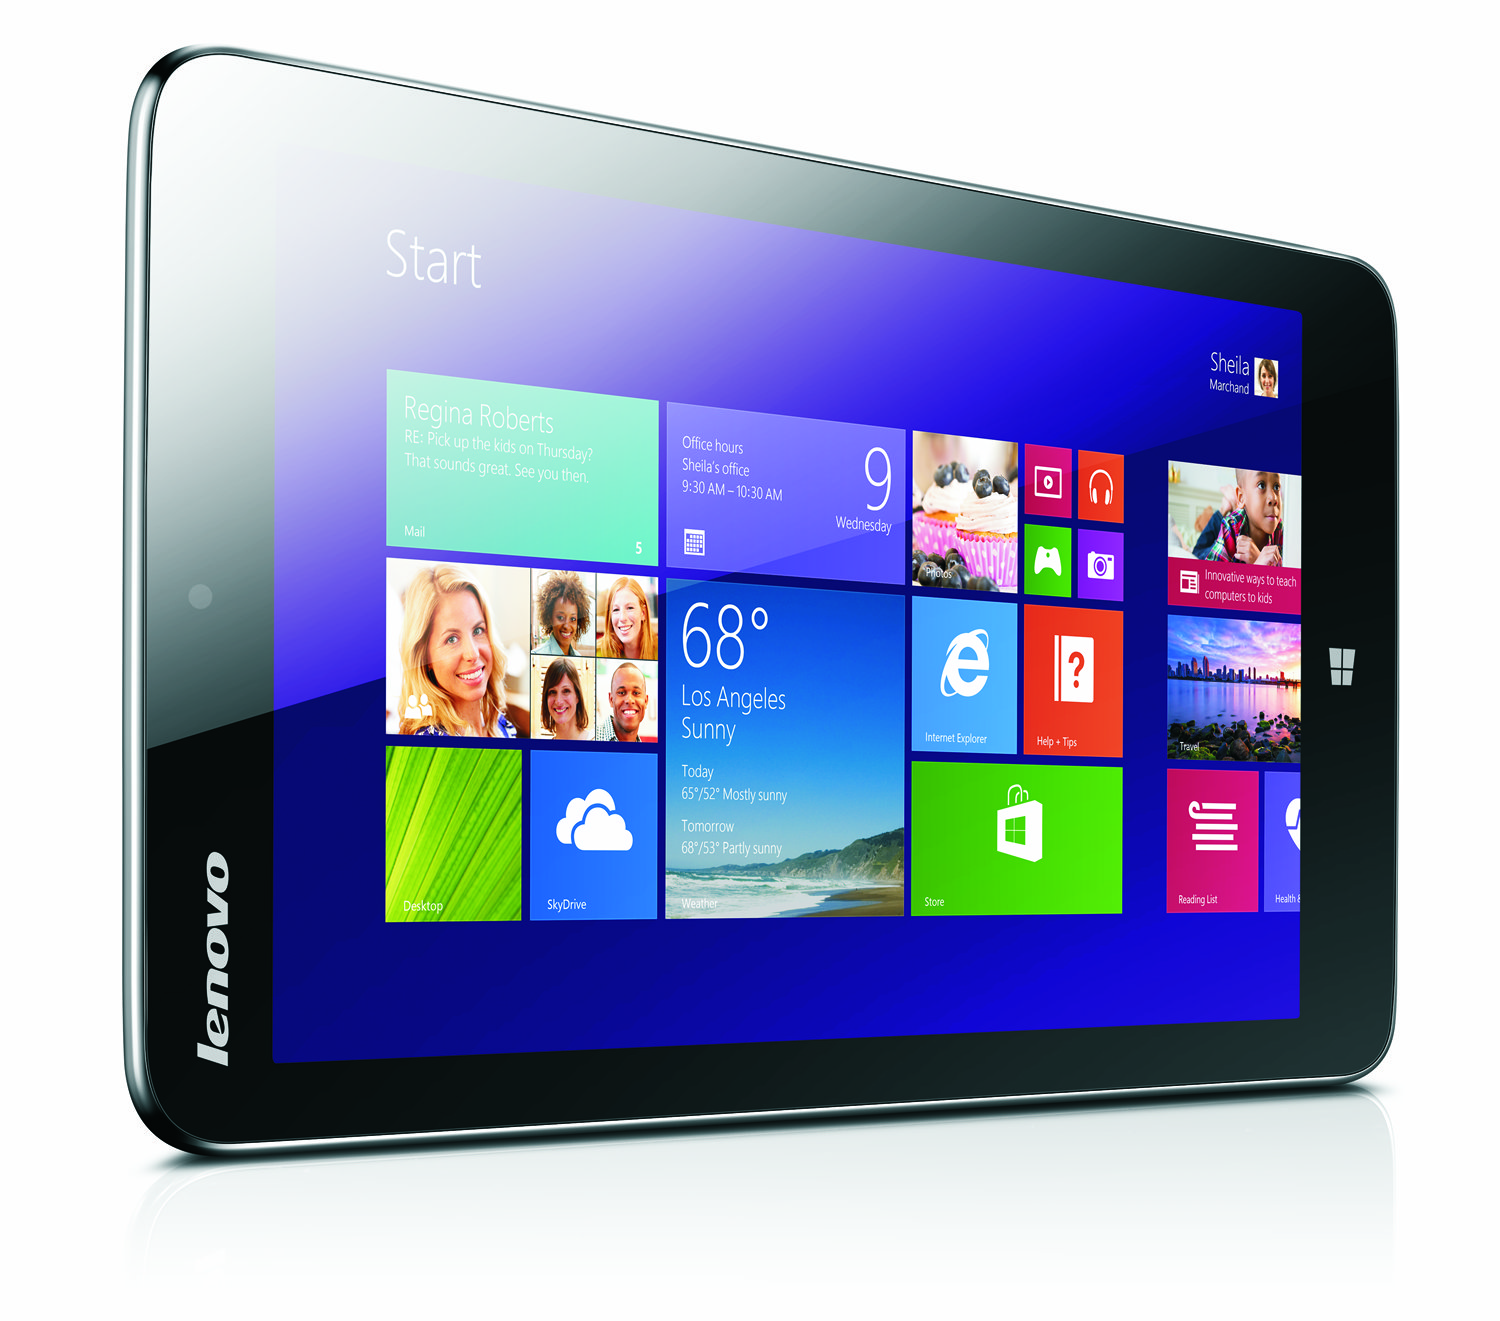 lenovo announces 8 inch miix 2 tablet with windows 8 1 299 price tag tablet news. Black Bedroom Furniture Sets. Home Design Ideas